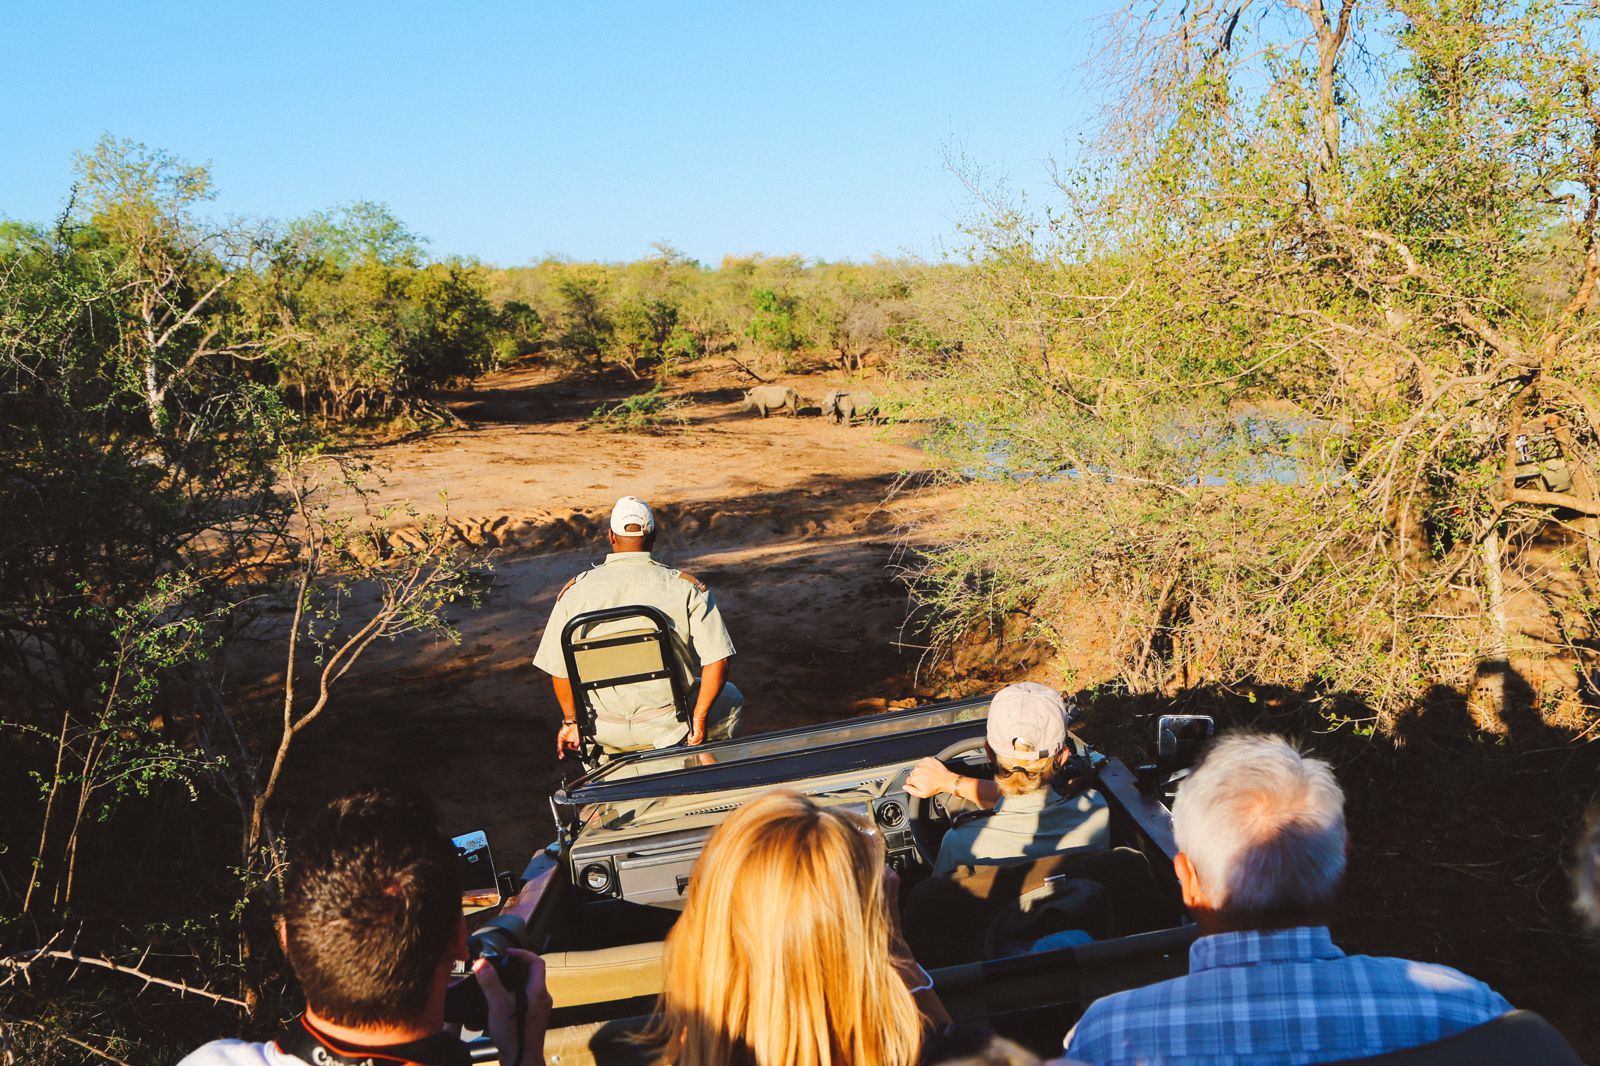 Midnight Lions, Skittish Giraffes And The Deadliest Of The Safari Big 5 In South Africa (47)